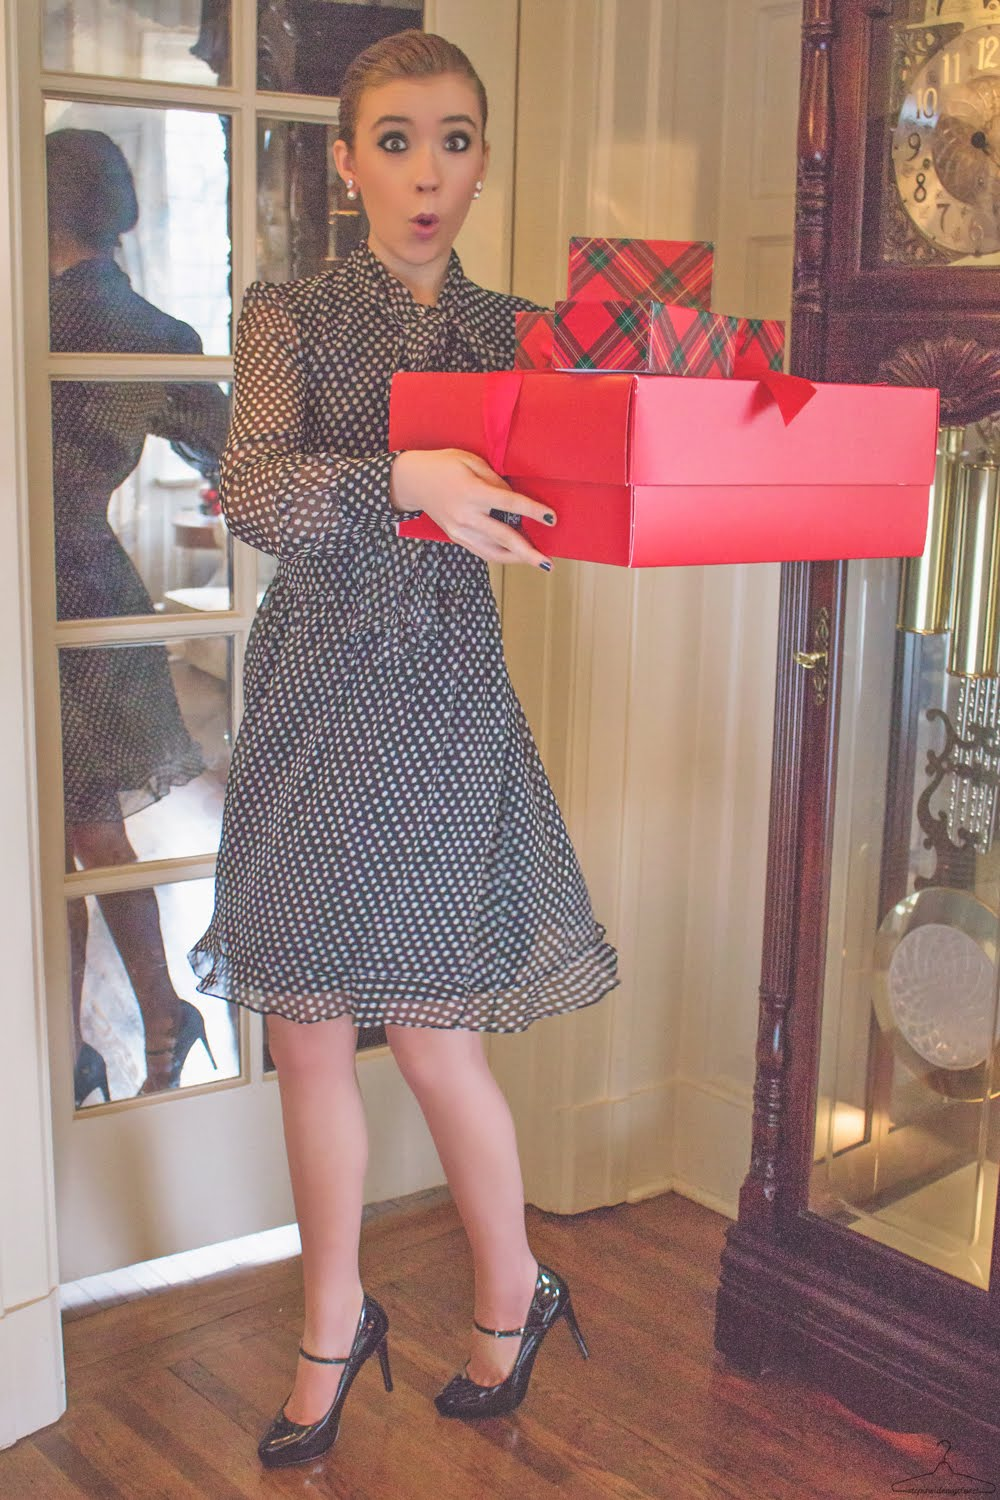 Step Inside My Closet - The Night Before Christmas - Chanel, DVF, lucky, outfit ideas, The Shopping Bag,